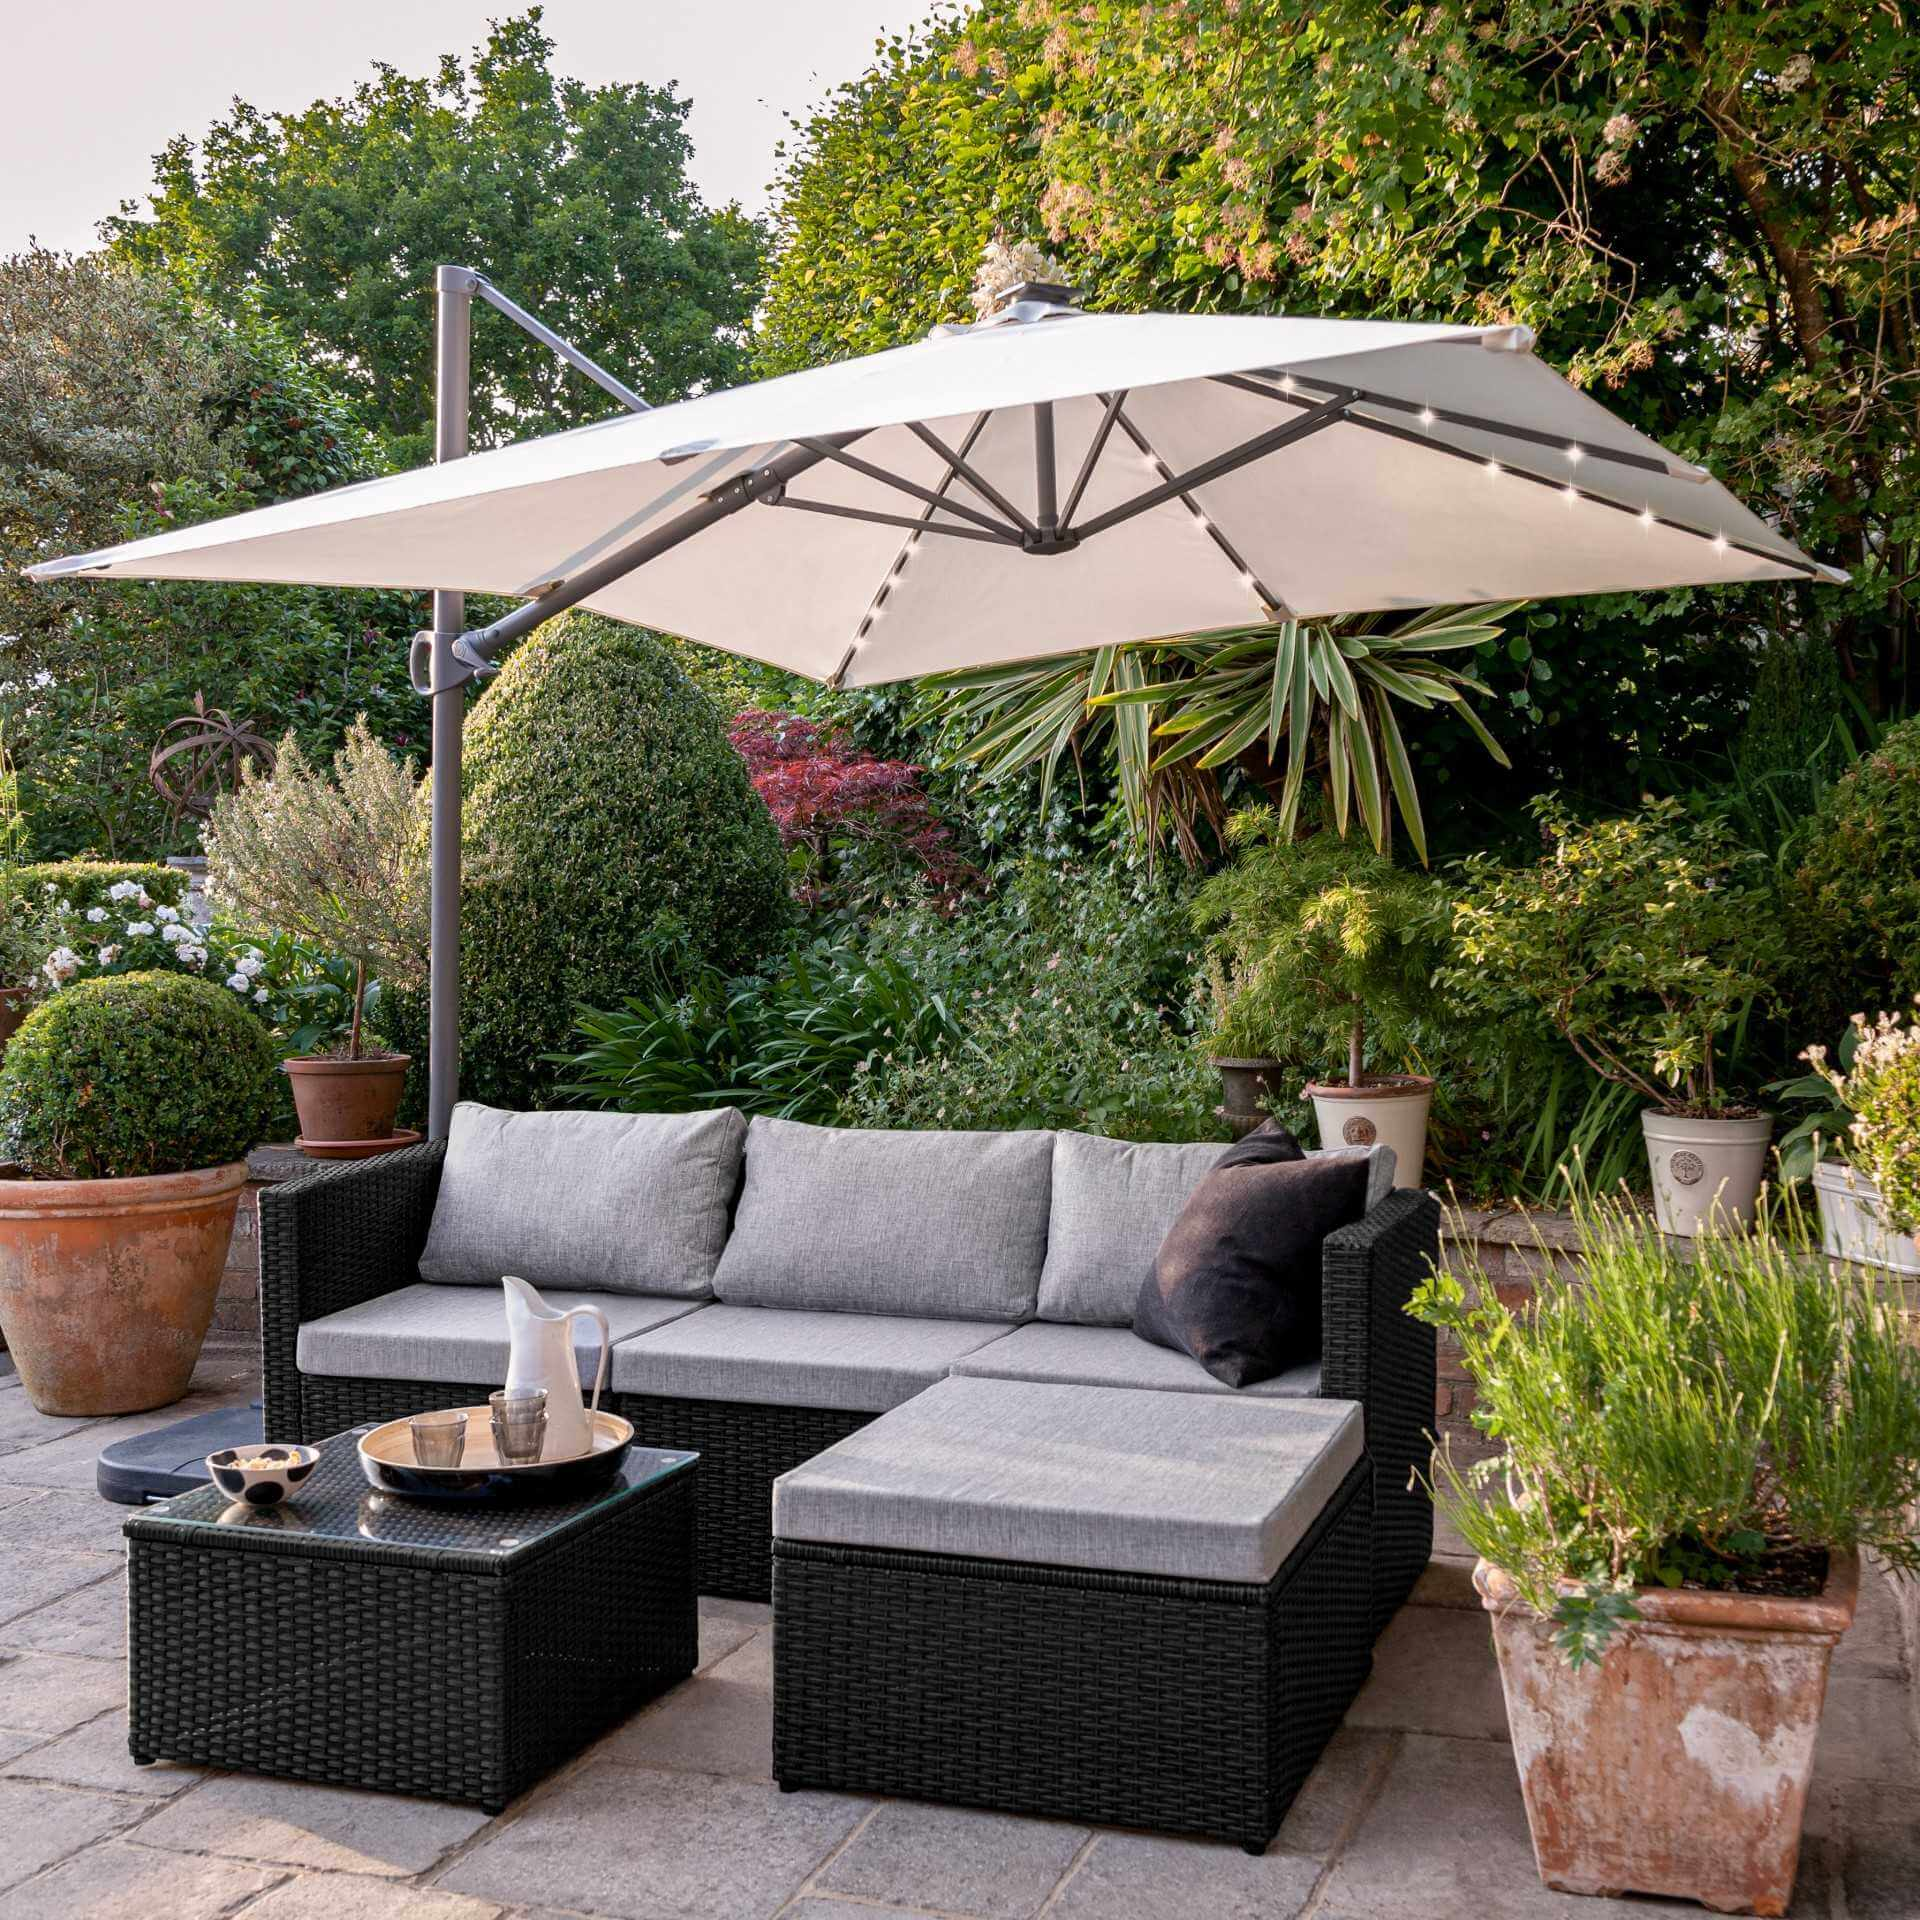 4 Seater Rattan Corner Sofa Set with Cantilever Parasol and Base - Black Weave - Laura James